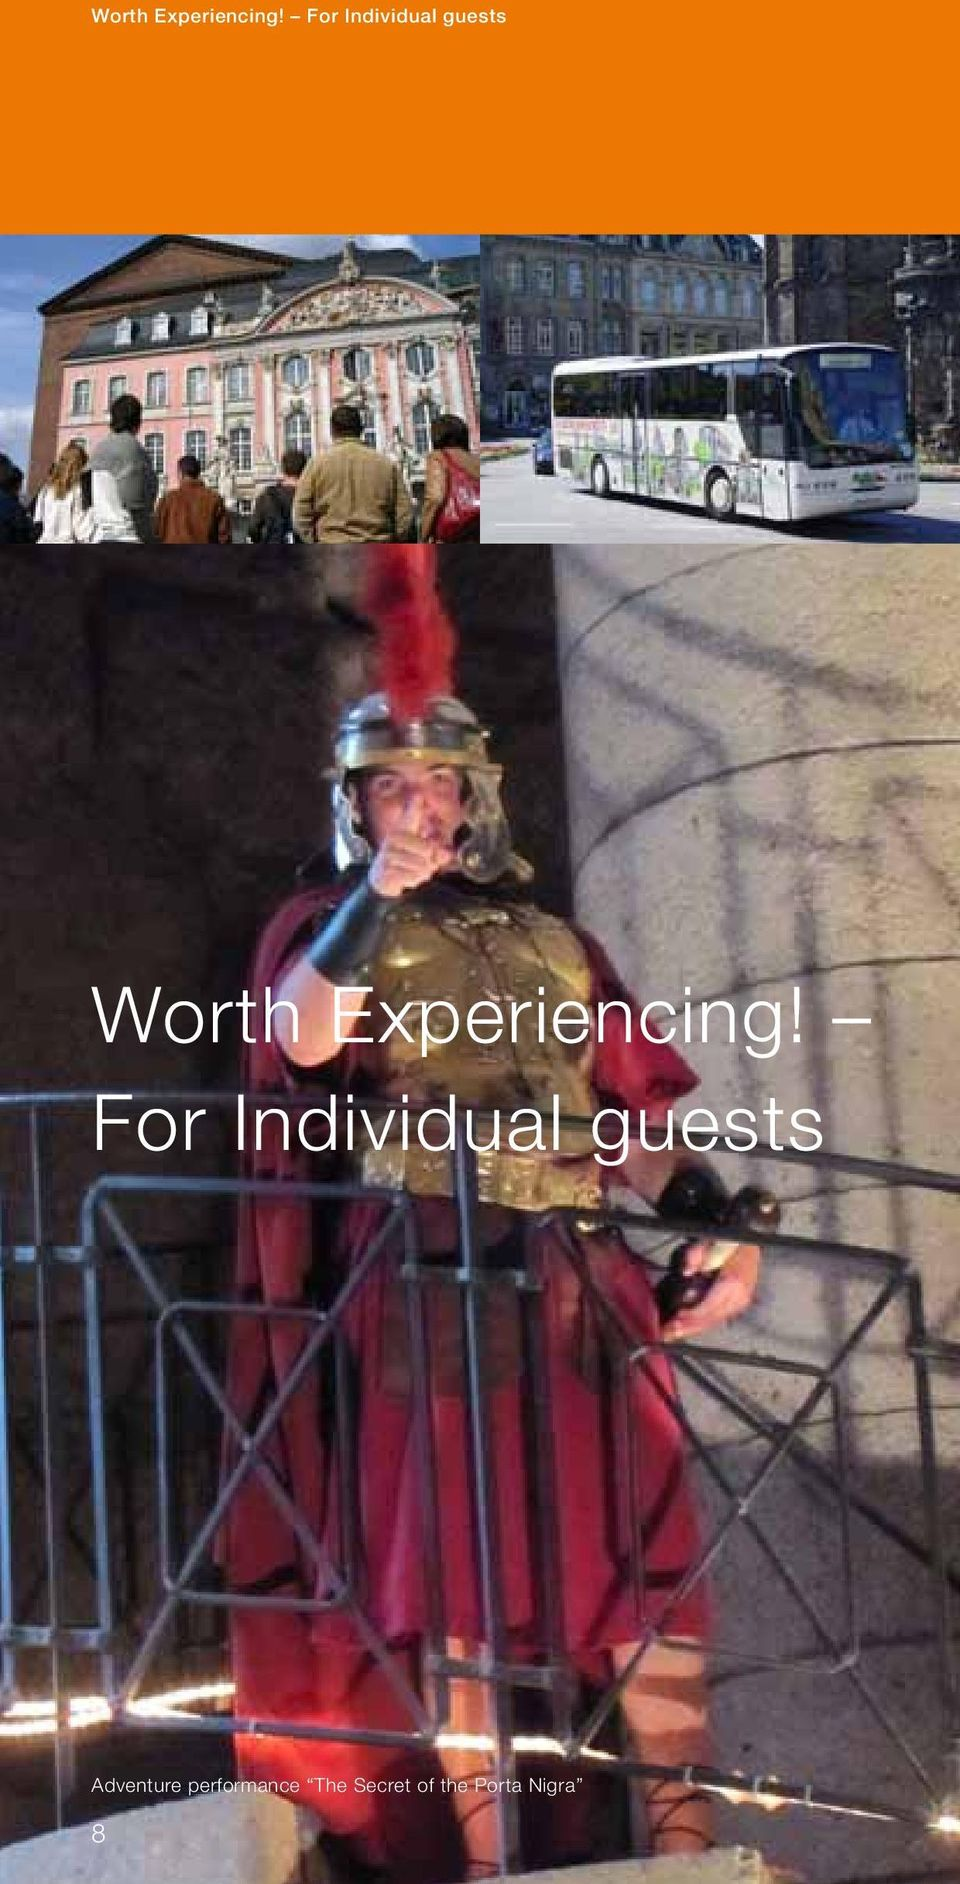 Individual guests Adventure